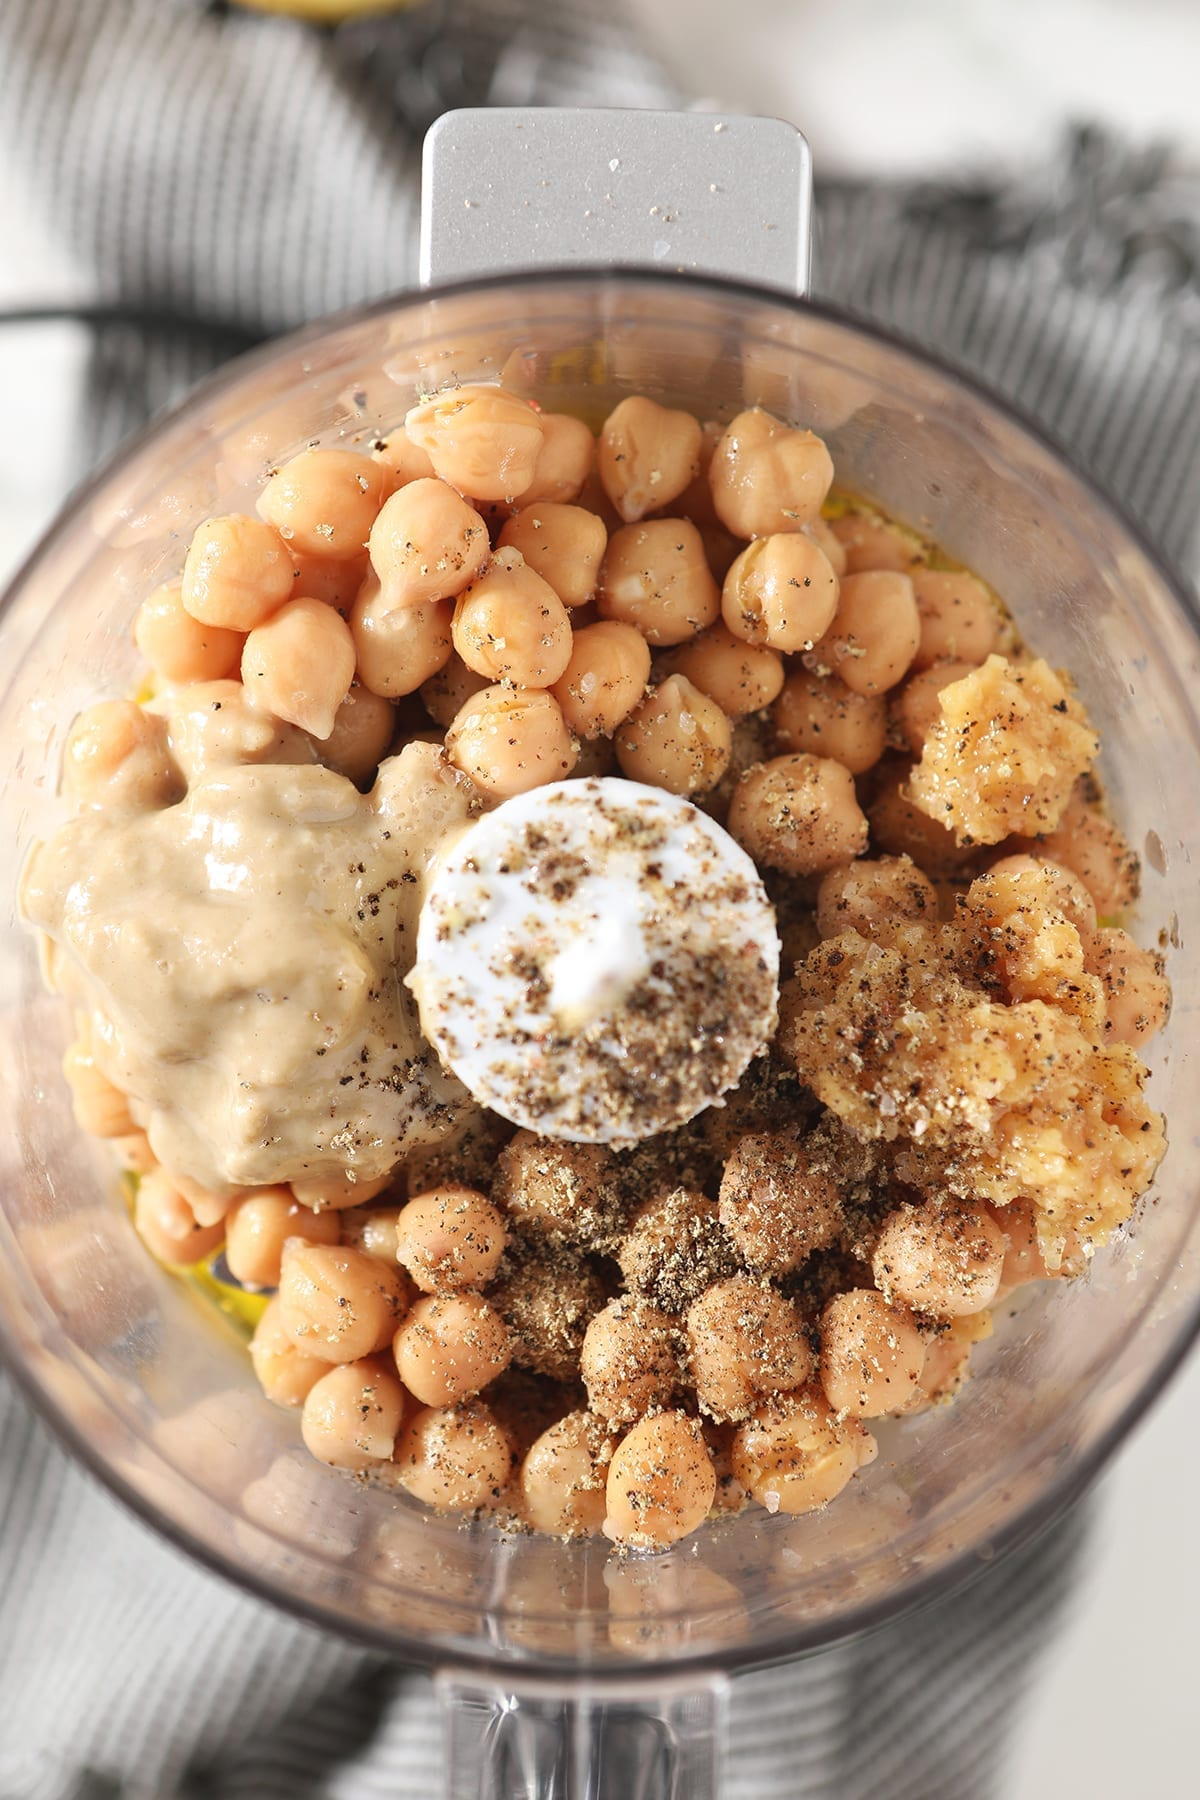 Close up of chickpeas, salt, pepper, tahini, garlic and other ingredients in a food processor before blending